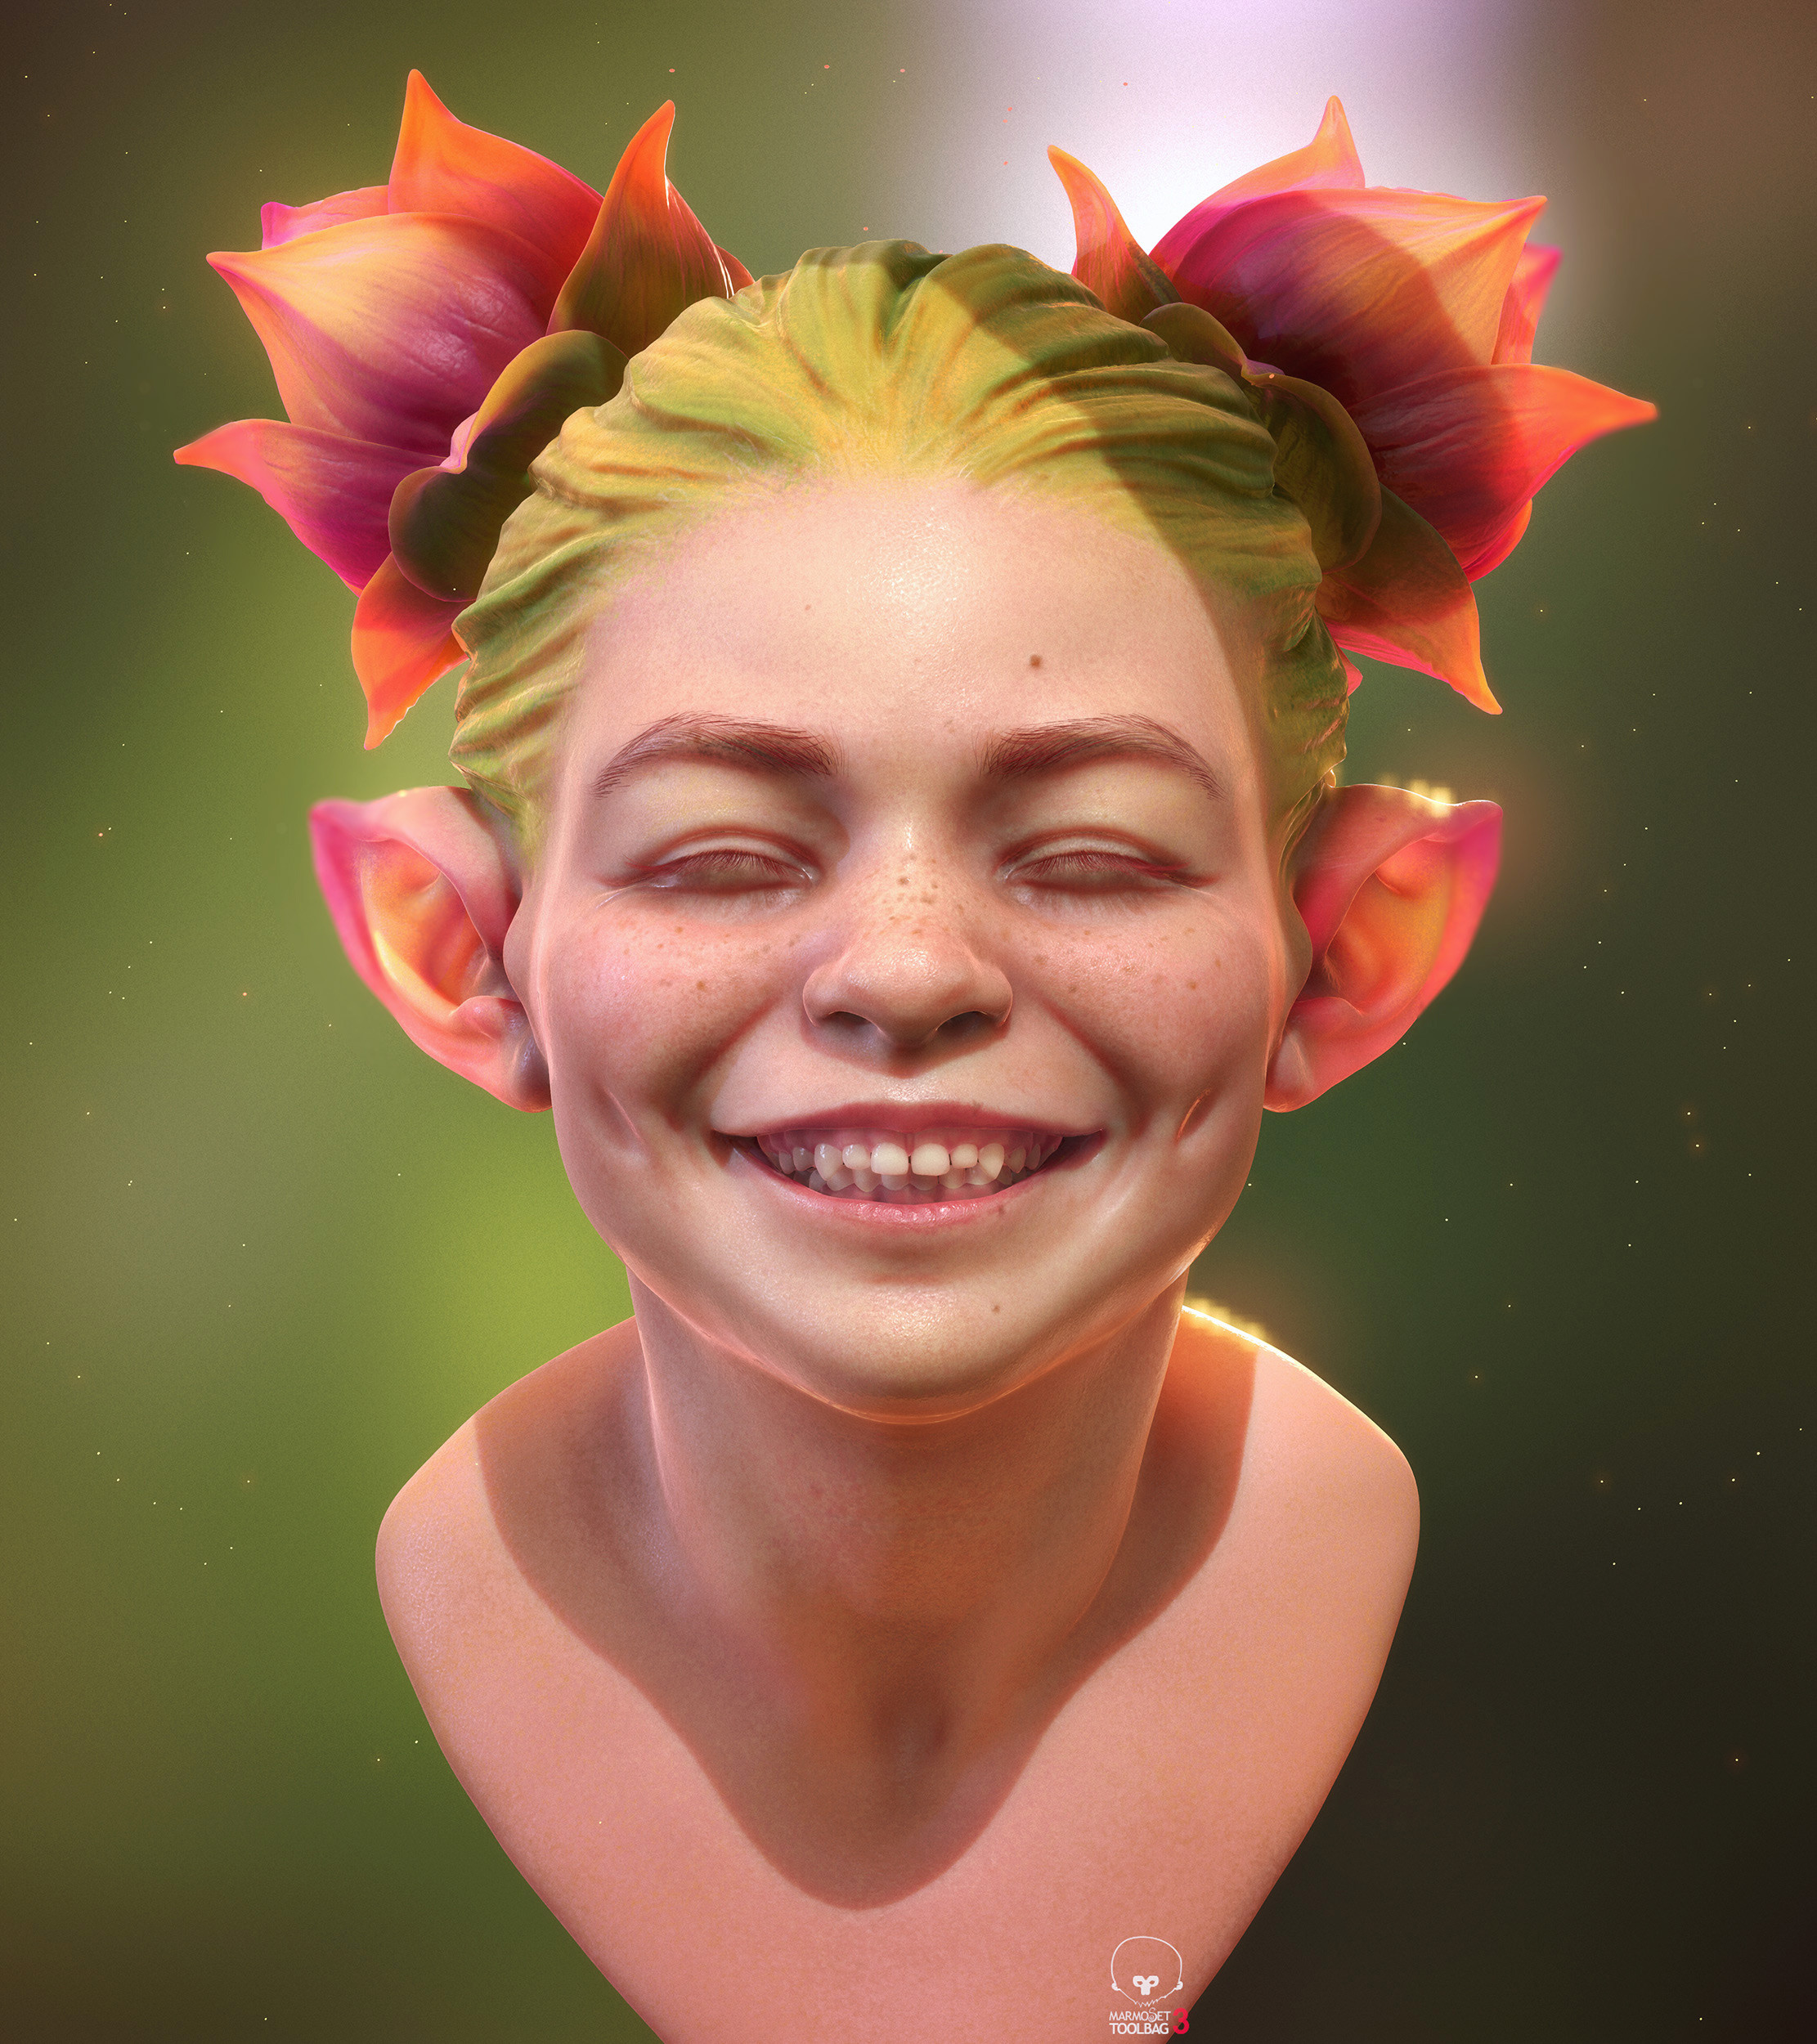 Pixie - marmoset toolbag experiment